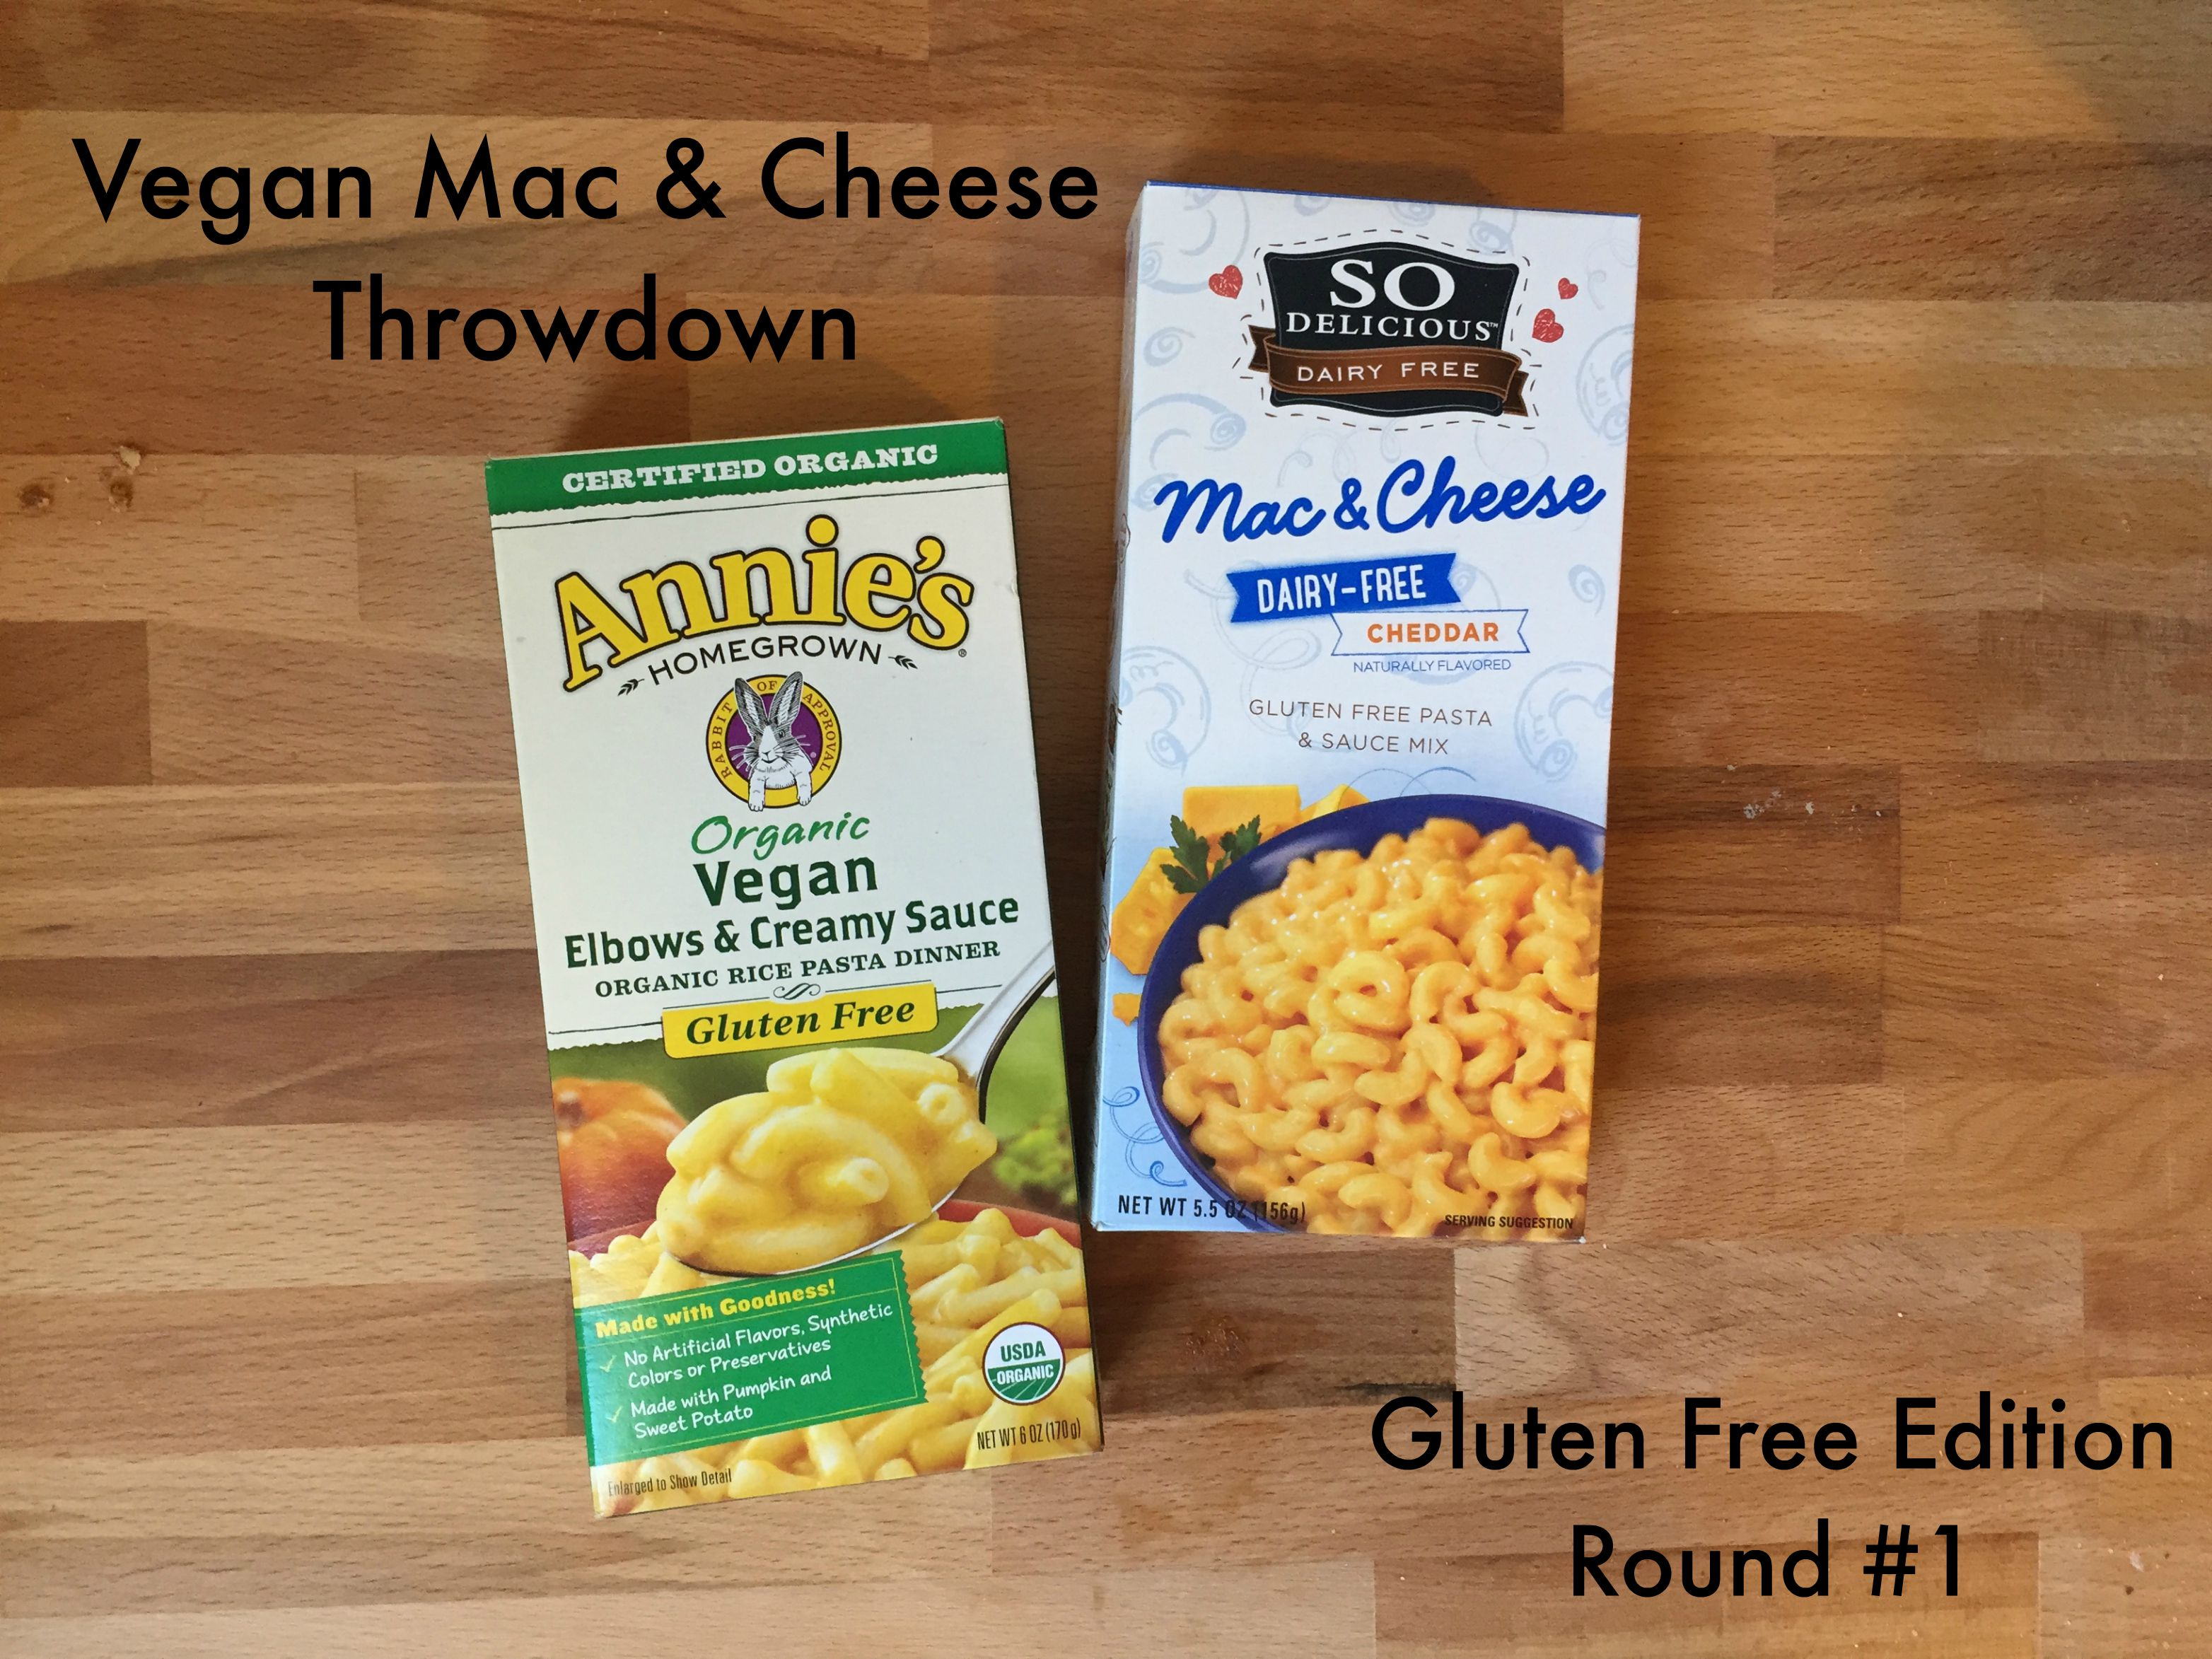 vegan mac and cheese throwndown 1